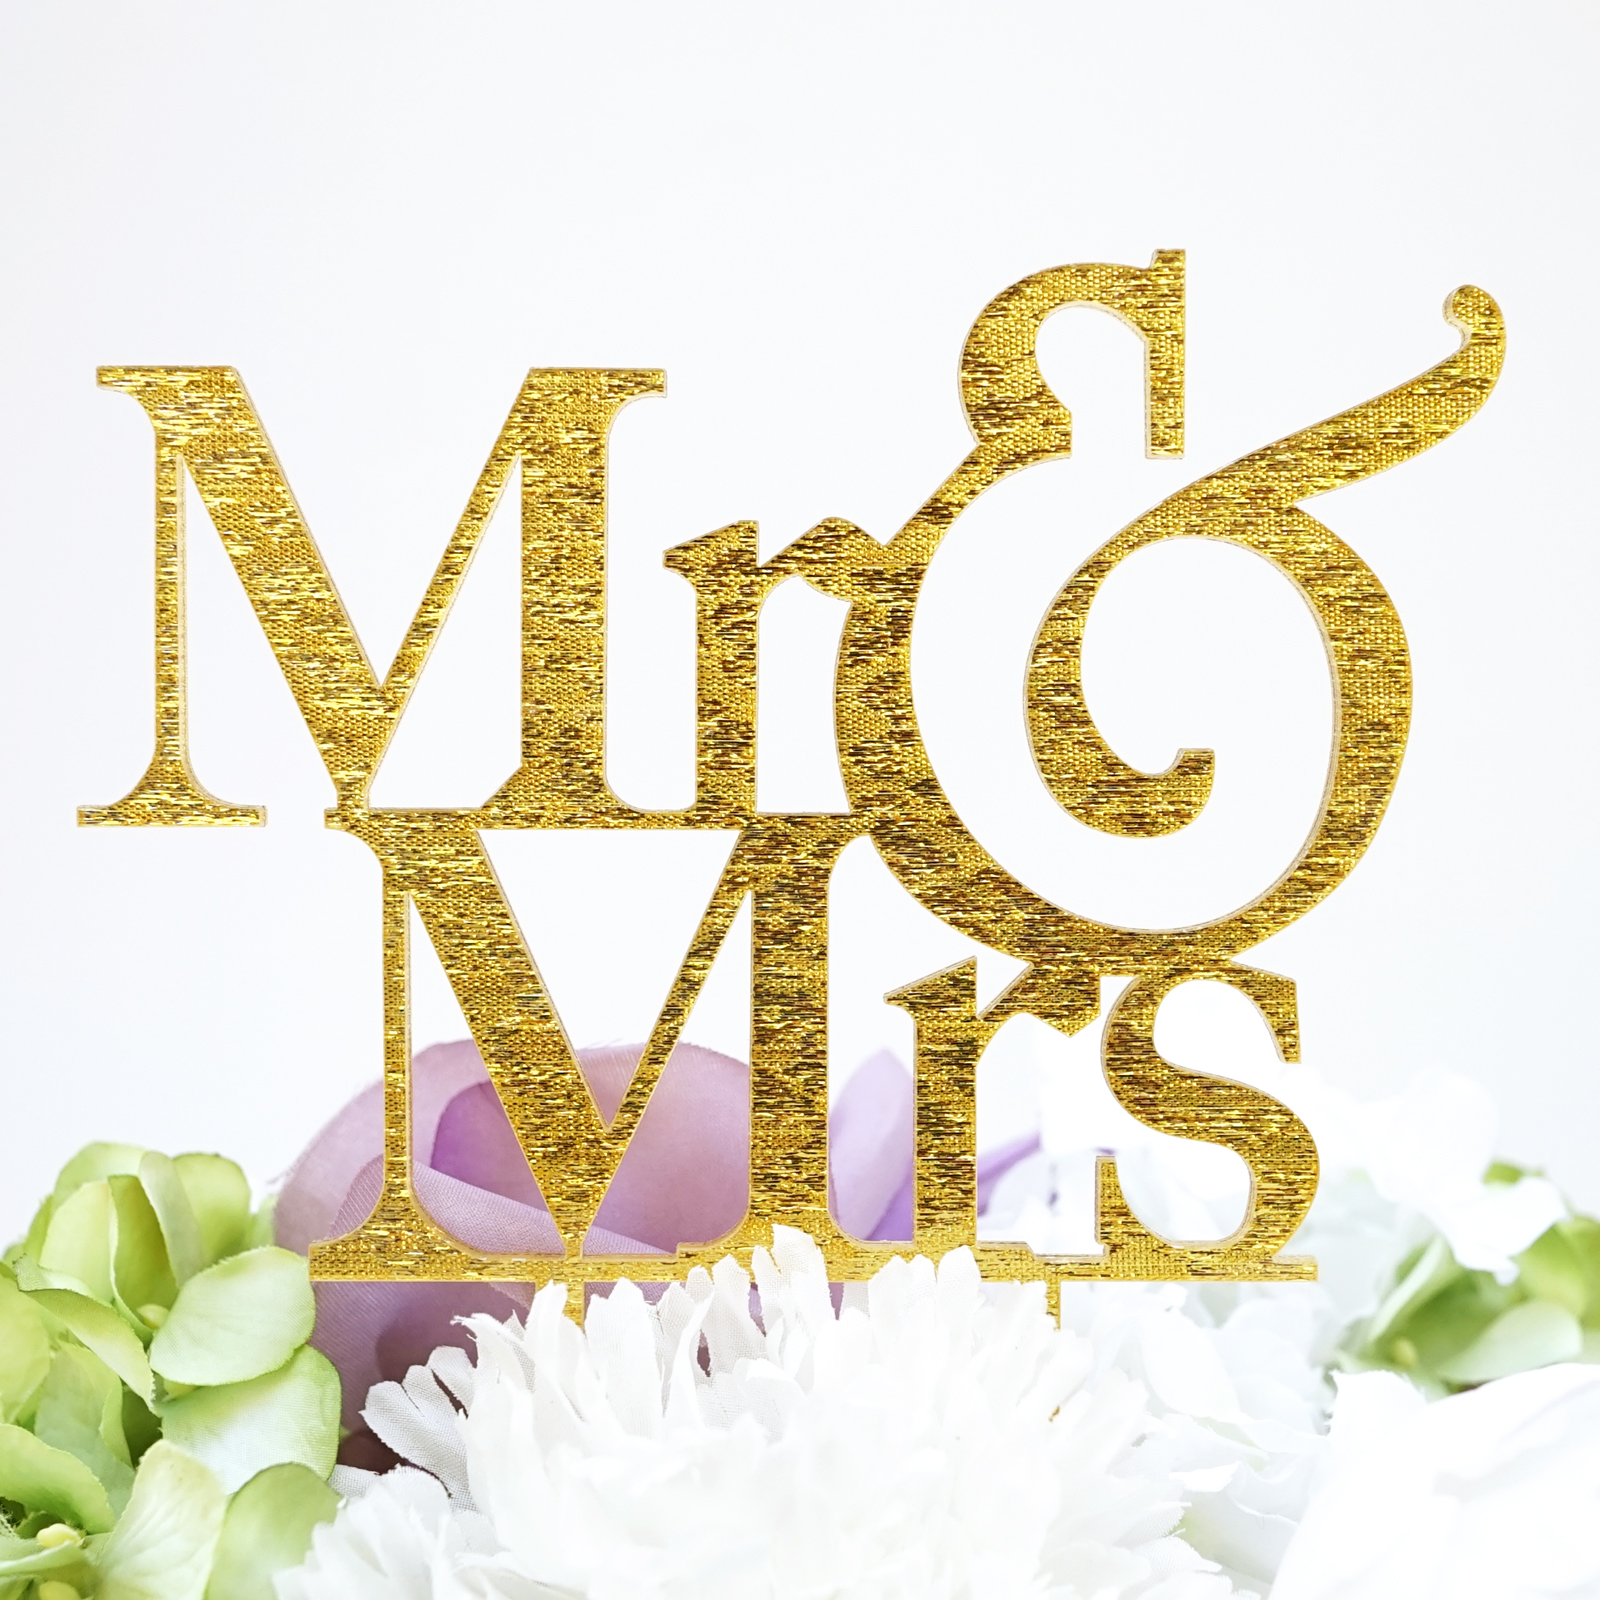 "Mr & Mrs"" Silhouette Wedding Cake Topper Pick 